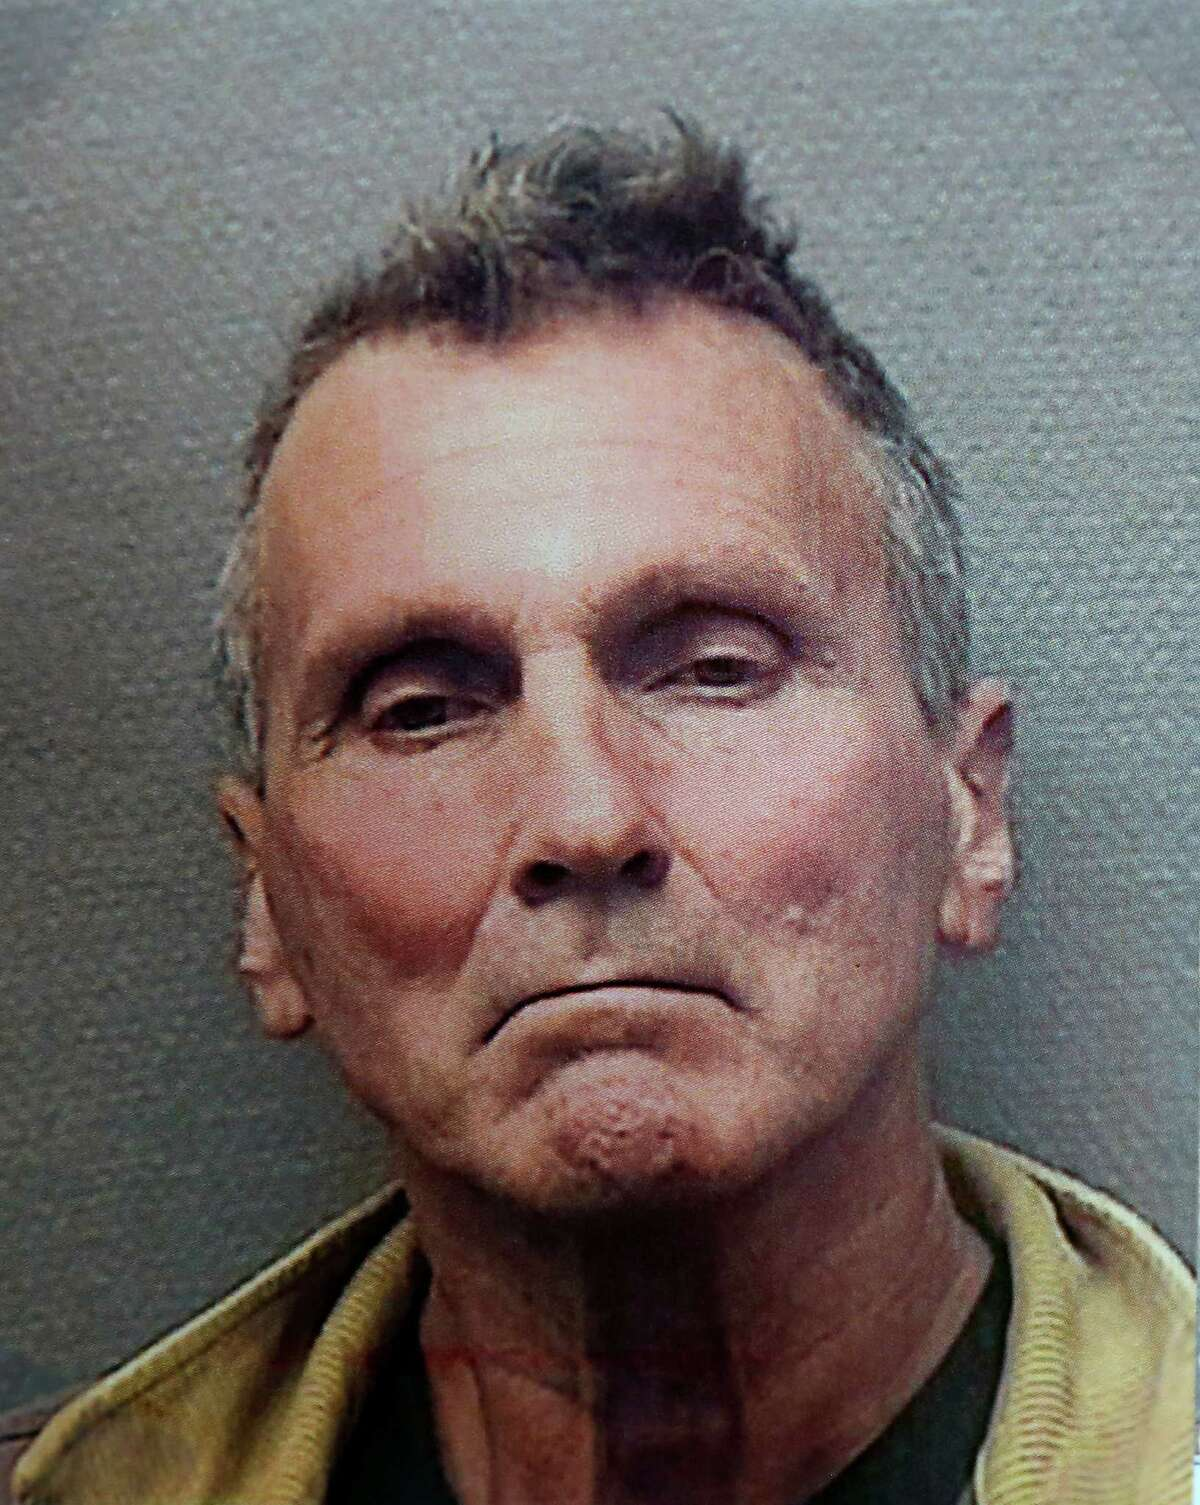 Edmond Beauregard Degan, 57, is charged with capital murder, Beauregard is accused in the 1984 deaths of Yleen Kennedy, 33, and Lillie Kennedy, 23, Friday, Jan. 16, 2015, in Houston. ( James Nielsen / Houston Chronicle )